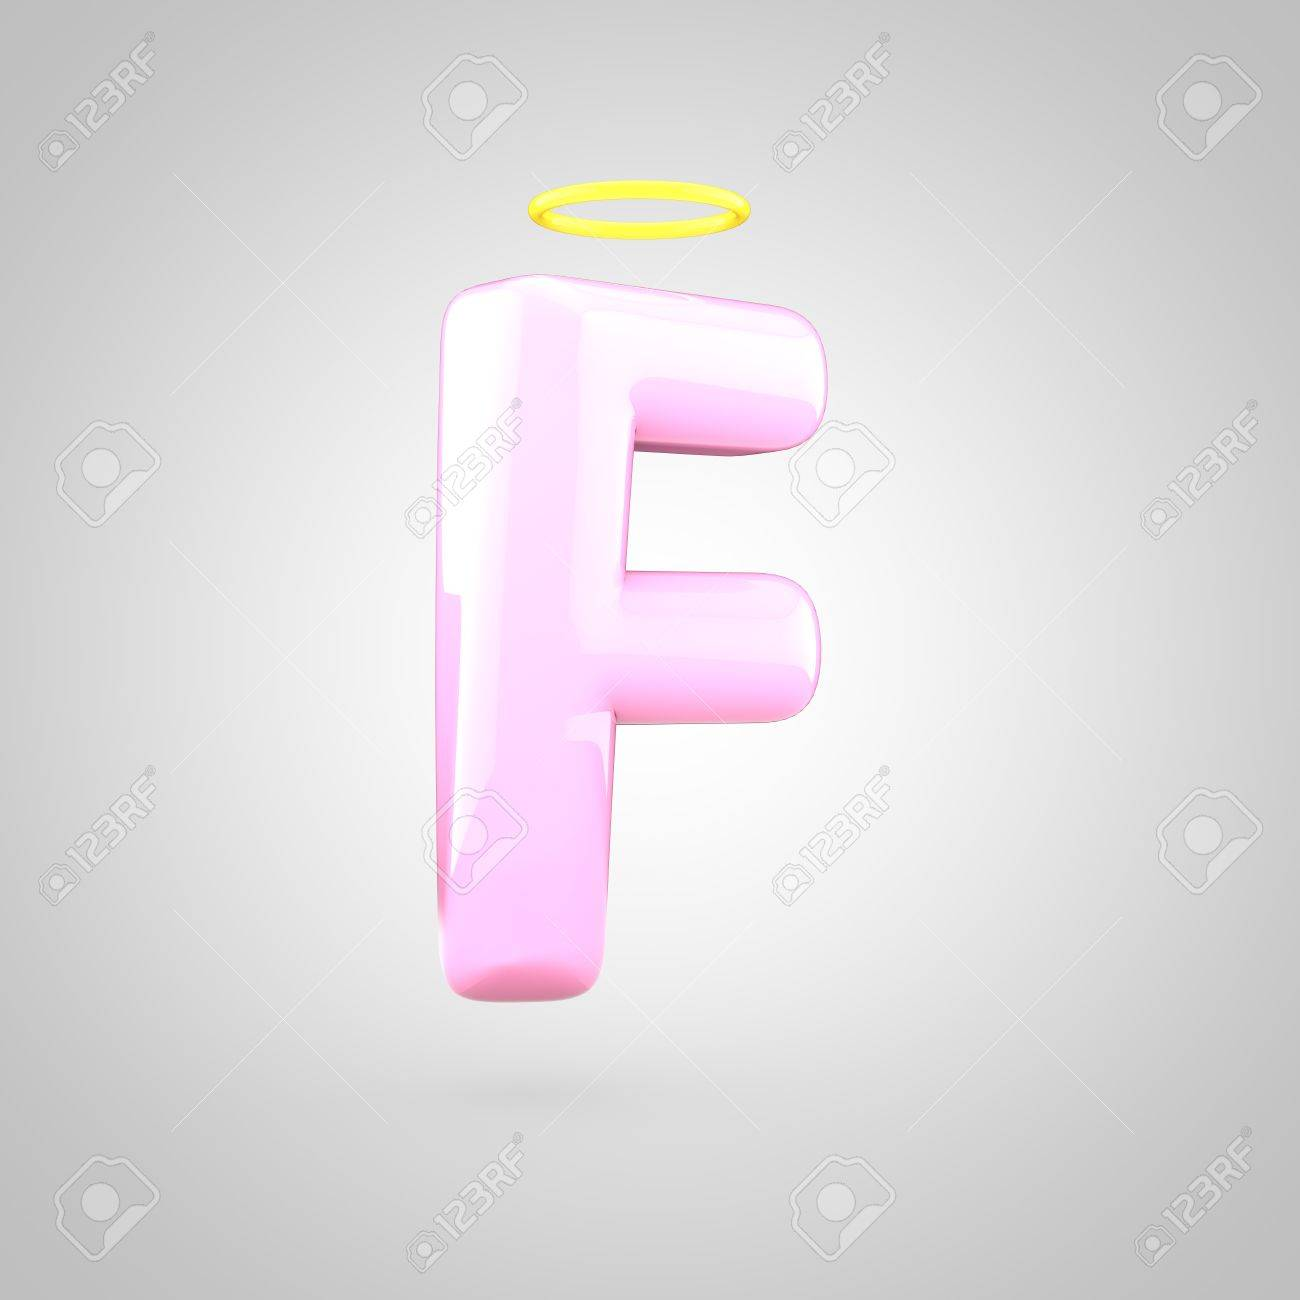 Cute Angelic Pink Letter F Uppercase 3D Render Of Bubble Font With Glint Isolated On